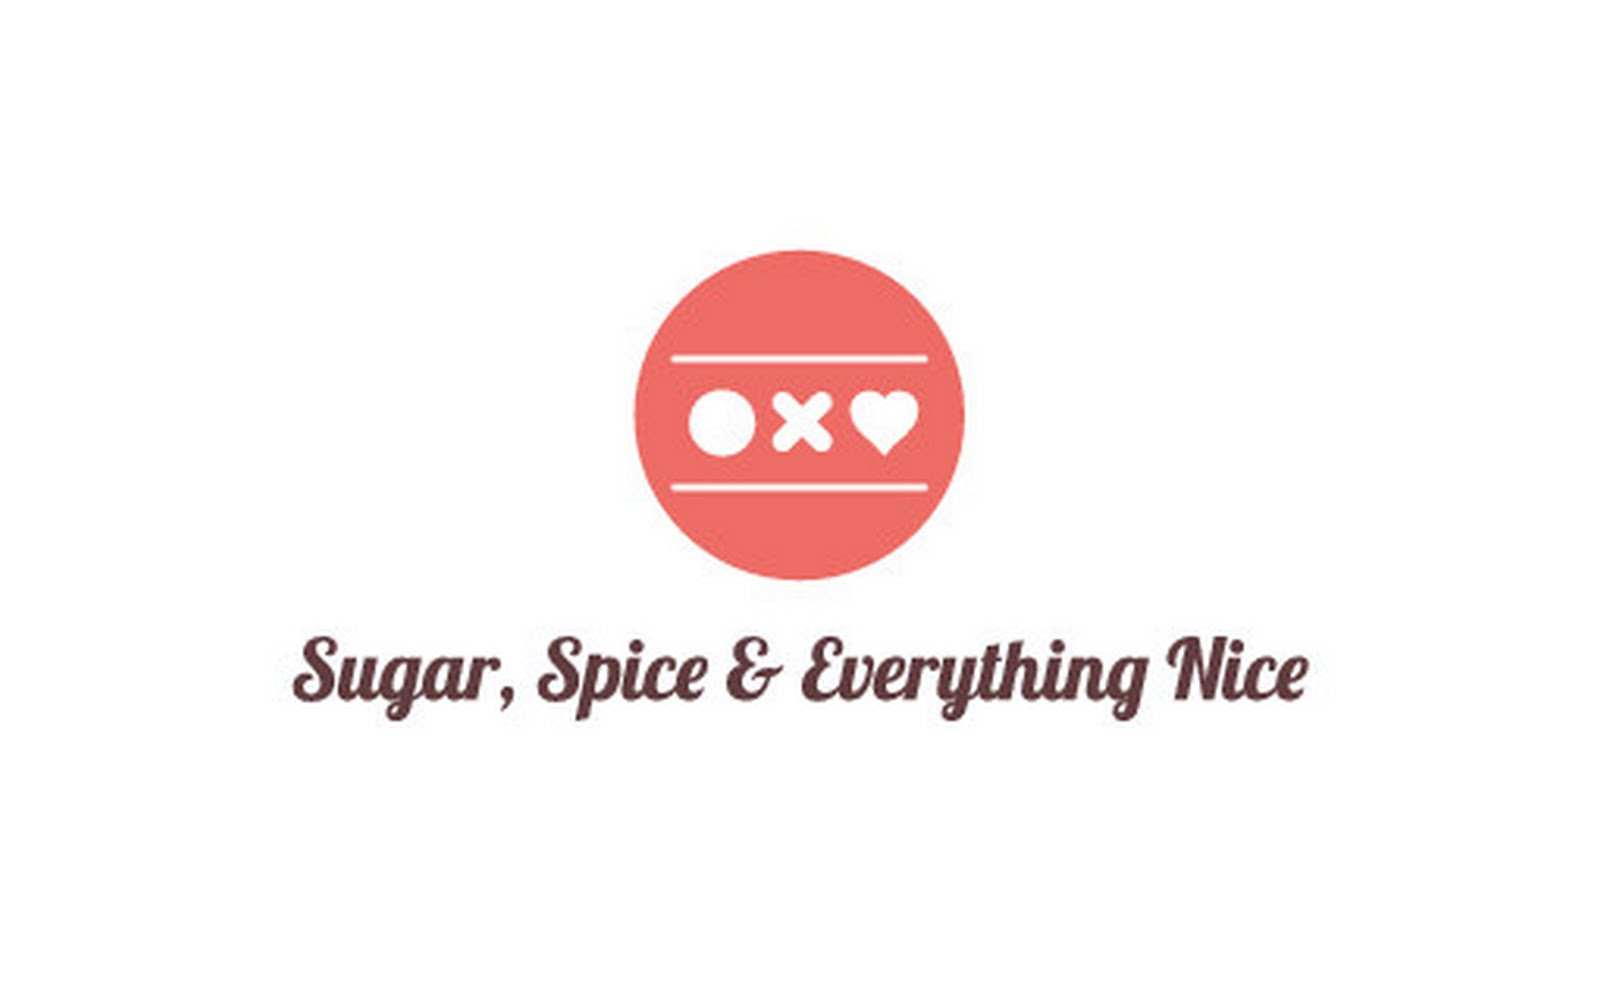 Sugar, Spice & Everything Nice